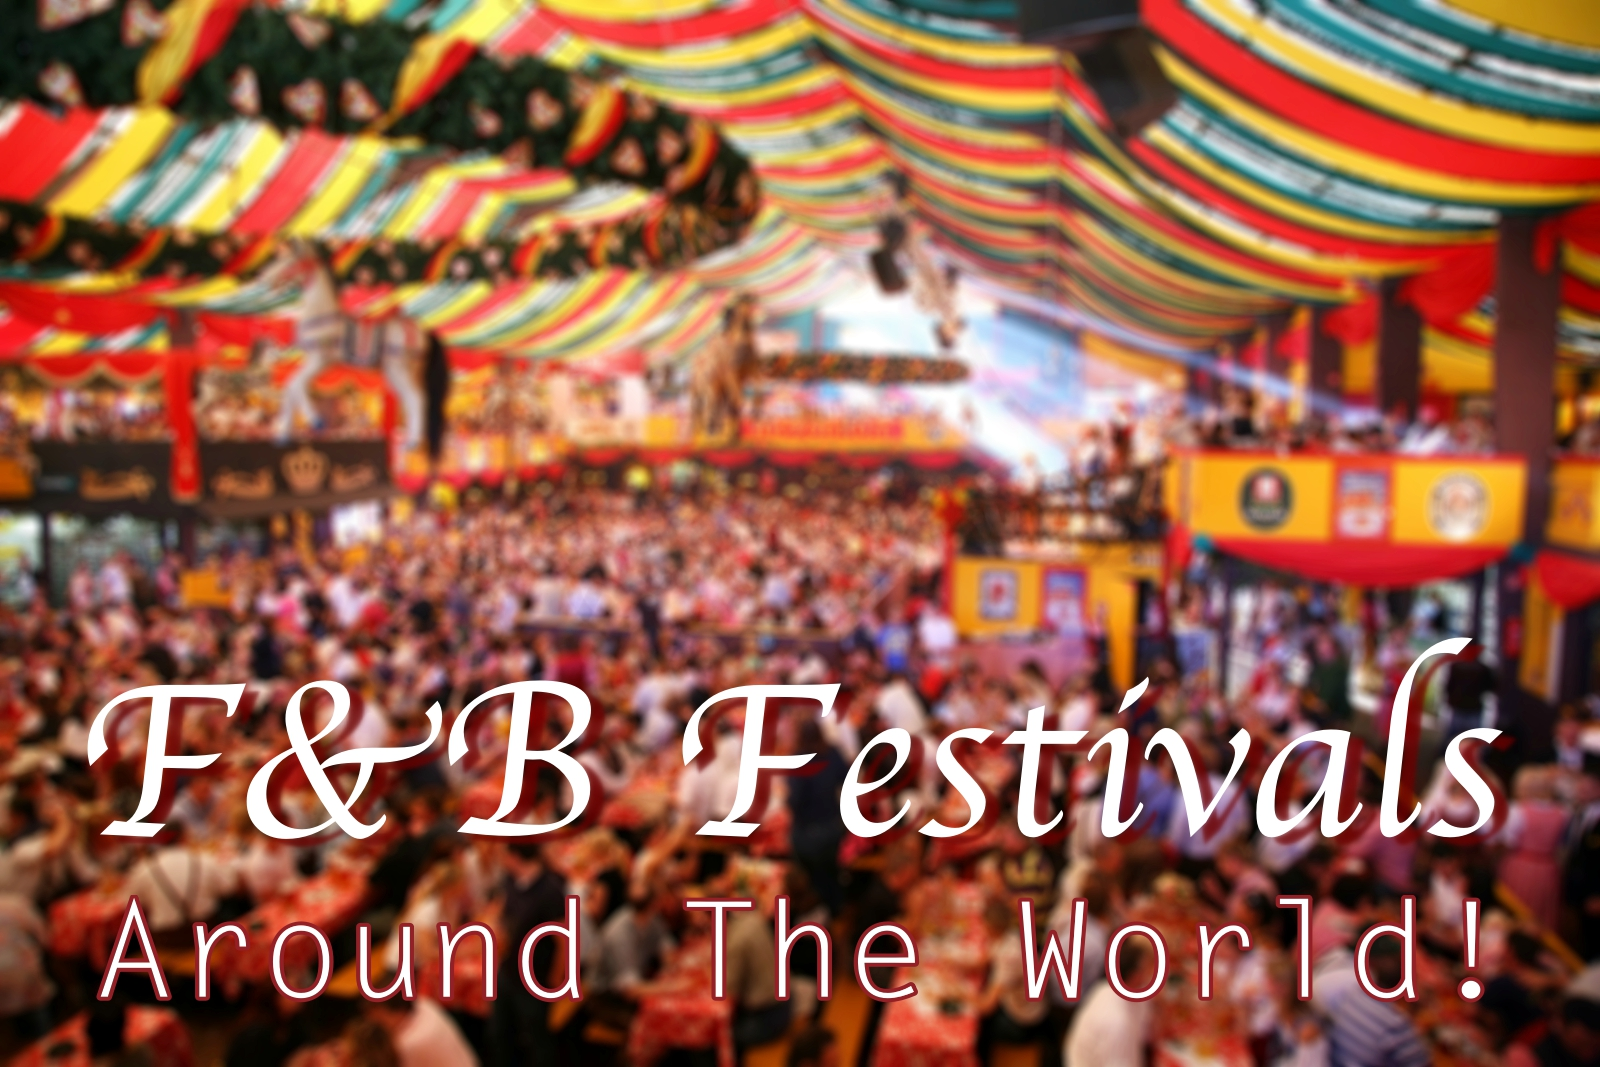 Upcoming Food And Beverage Festivals Around The World